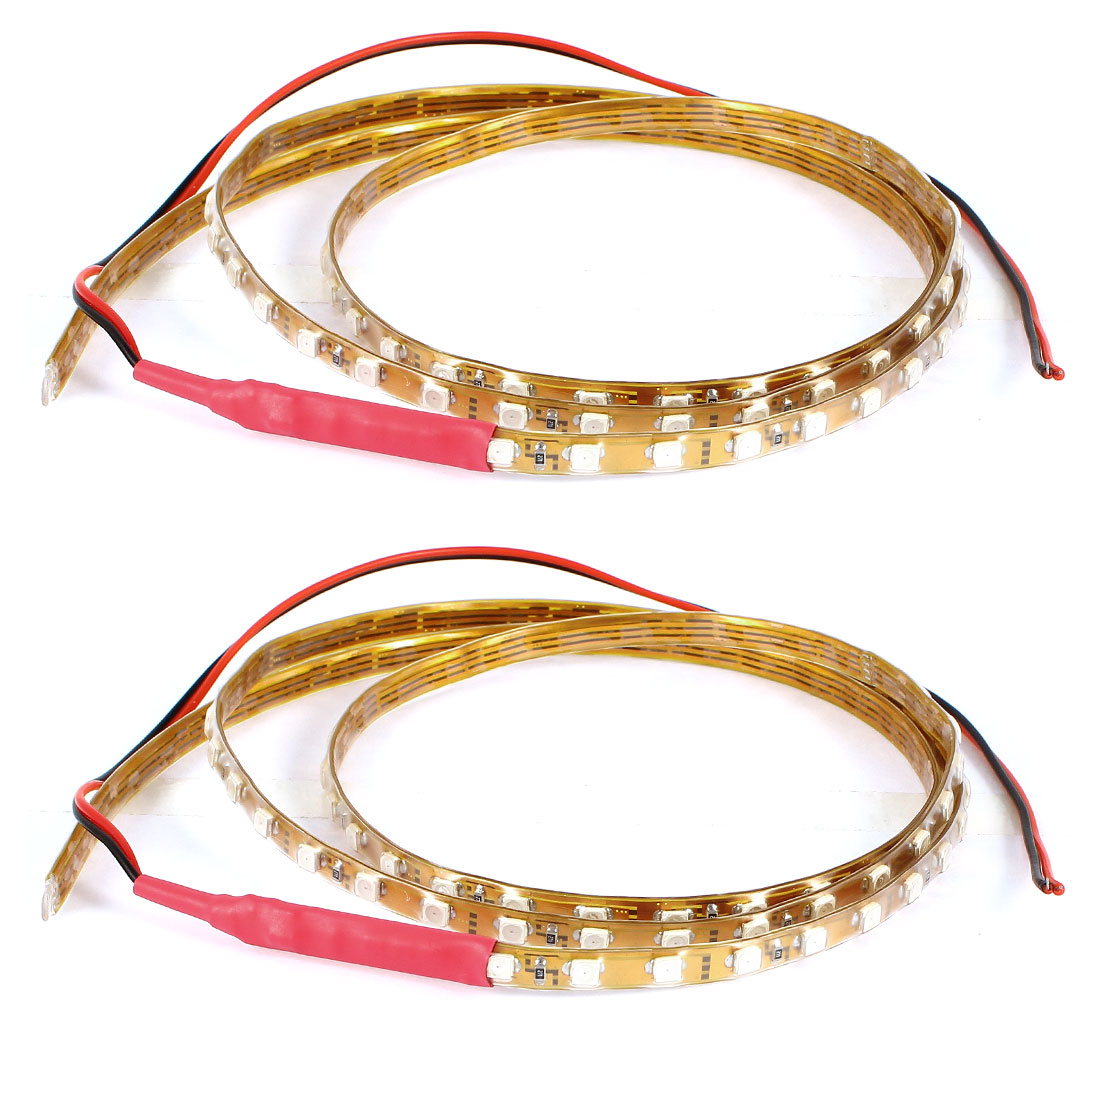 2 Pcs Waterproof Car Red 90 1210 3528 SMD LED Light Lamp Strip Bar 90cm DC 12V Internal